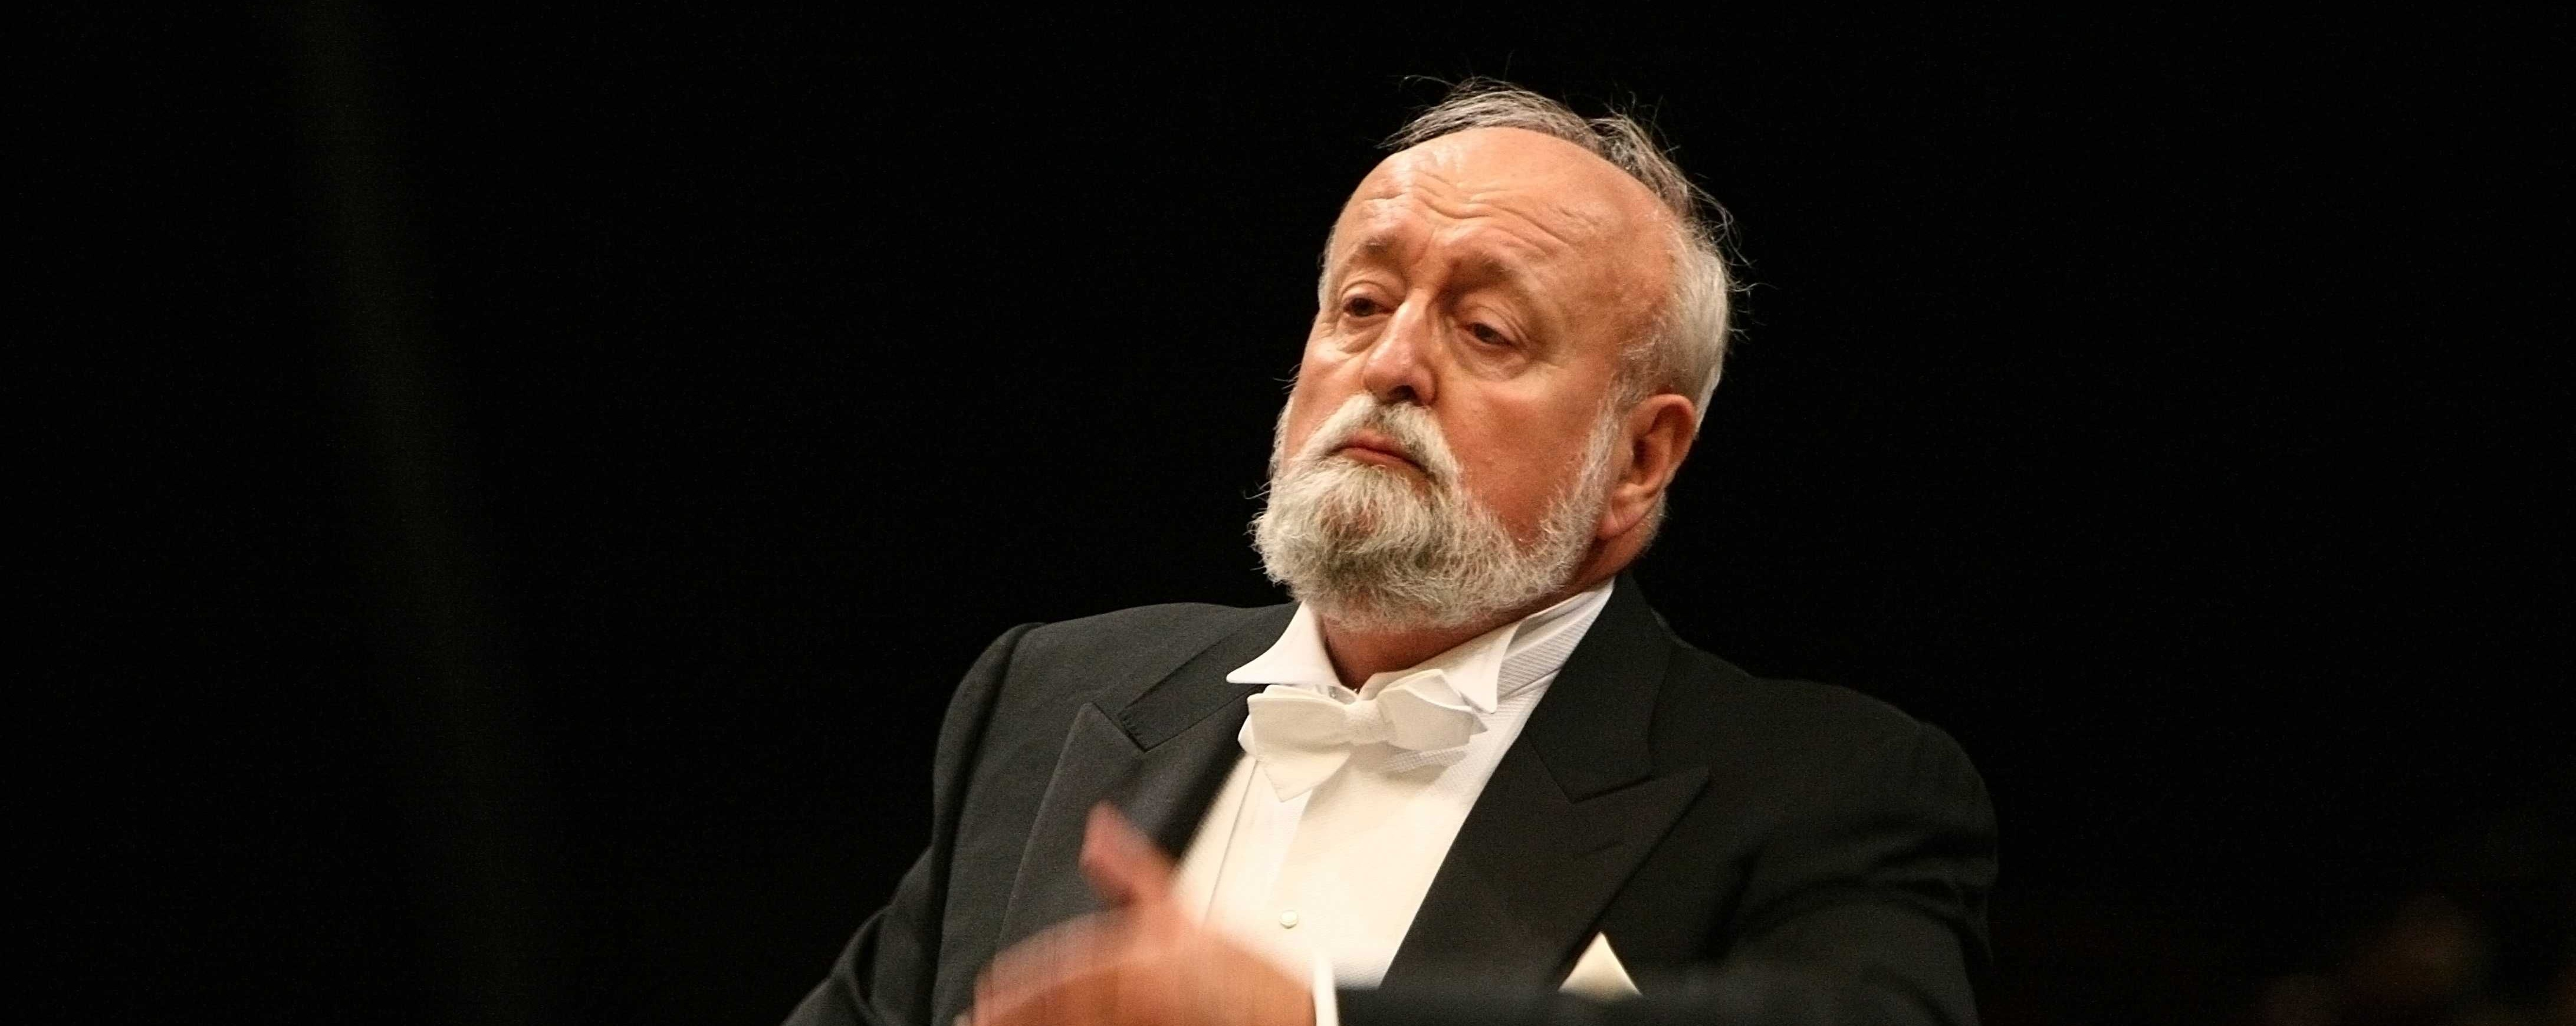 [CANCELLED] Red Balloon Series: Penderecki Conducts Penderecki